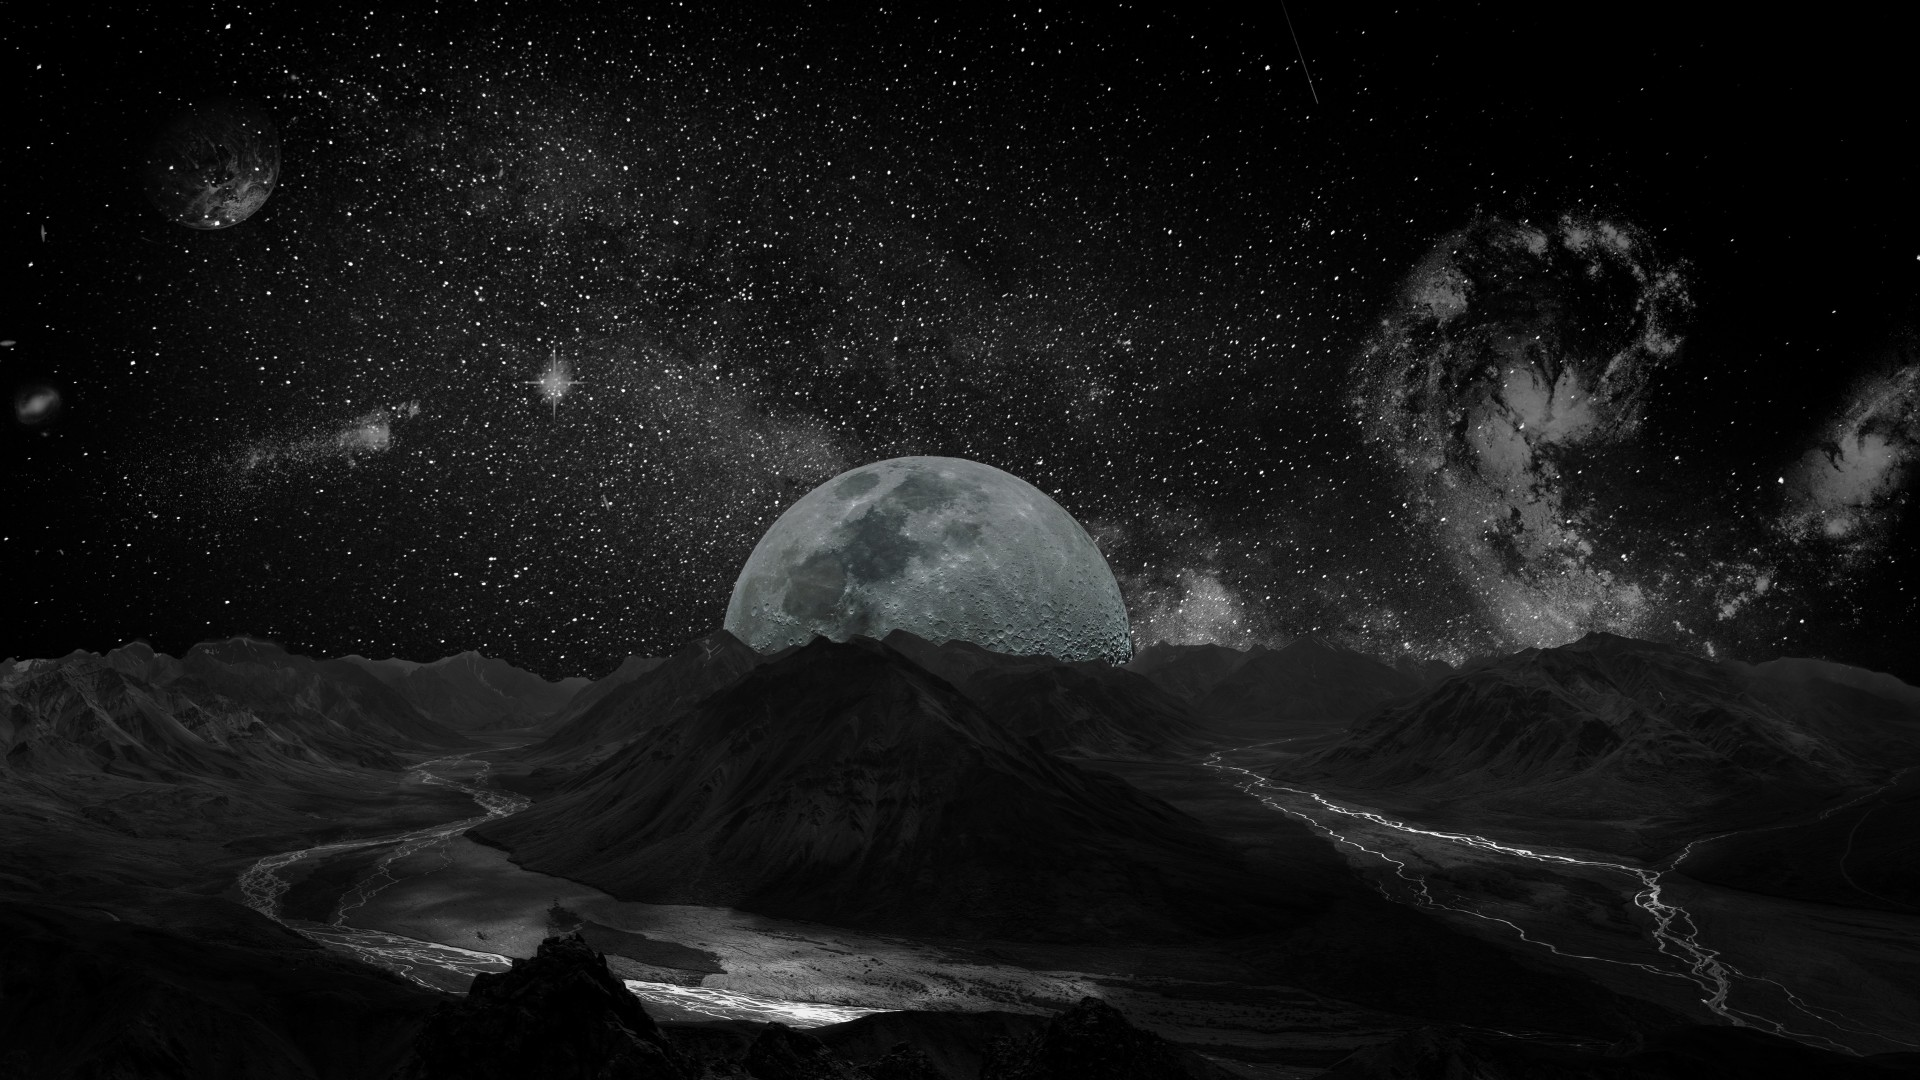 Wallpapers Of Cool Girls Wallpaper Moon Planet Space Milky Way 5k Space 17041